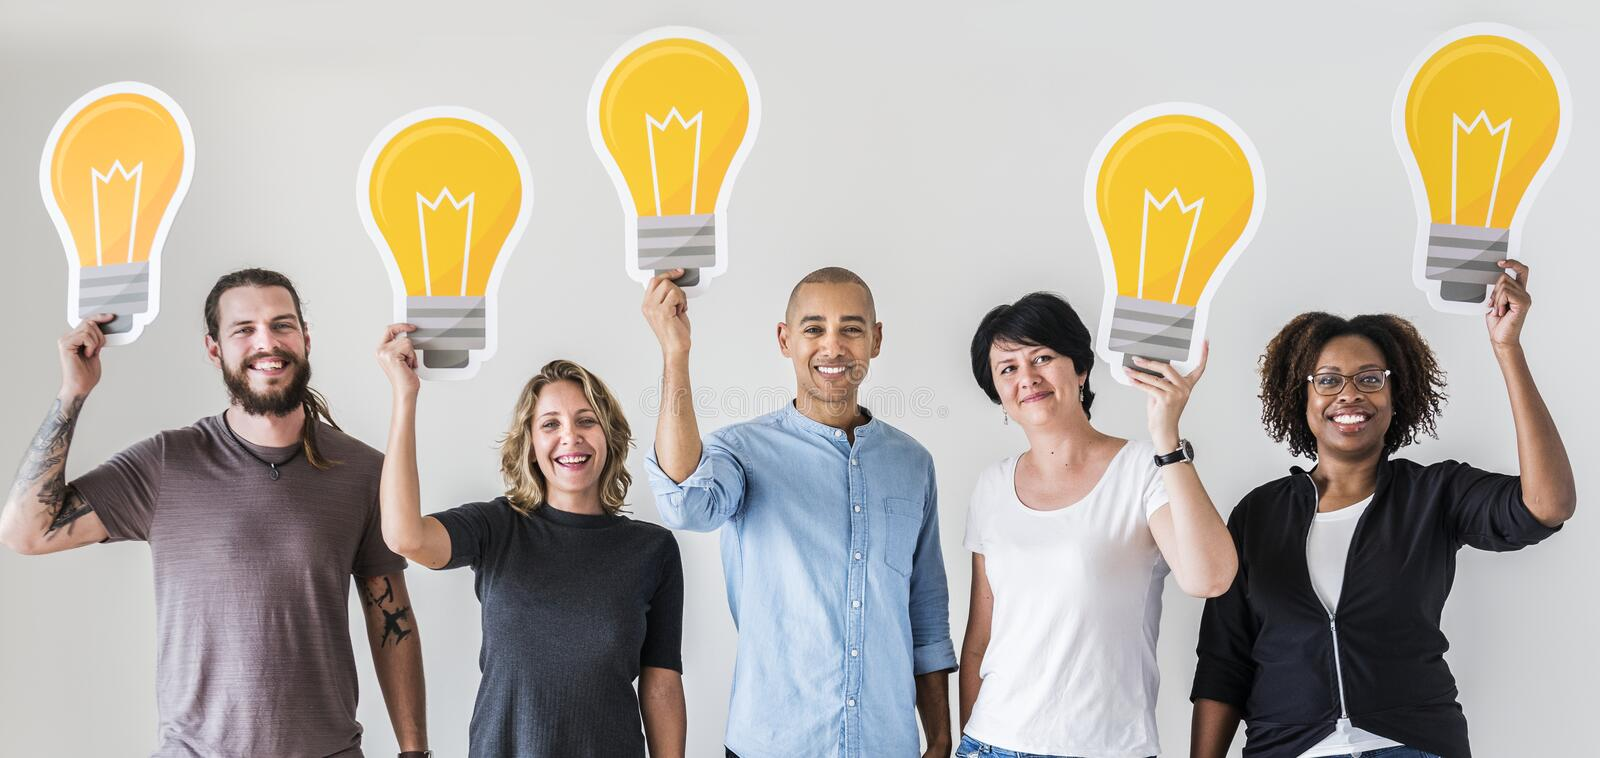 People standing with lightbulb icon royalty free stock images